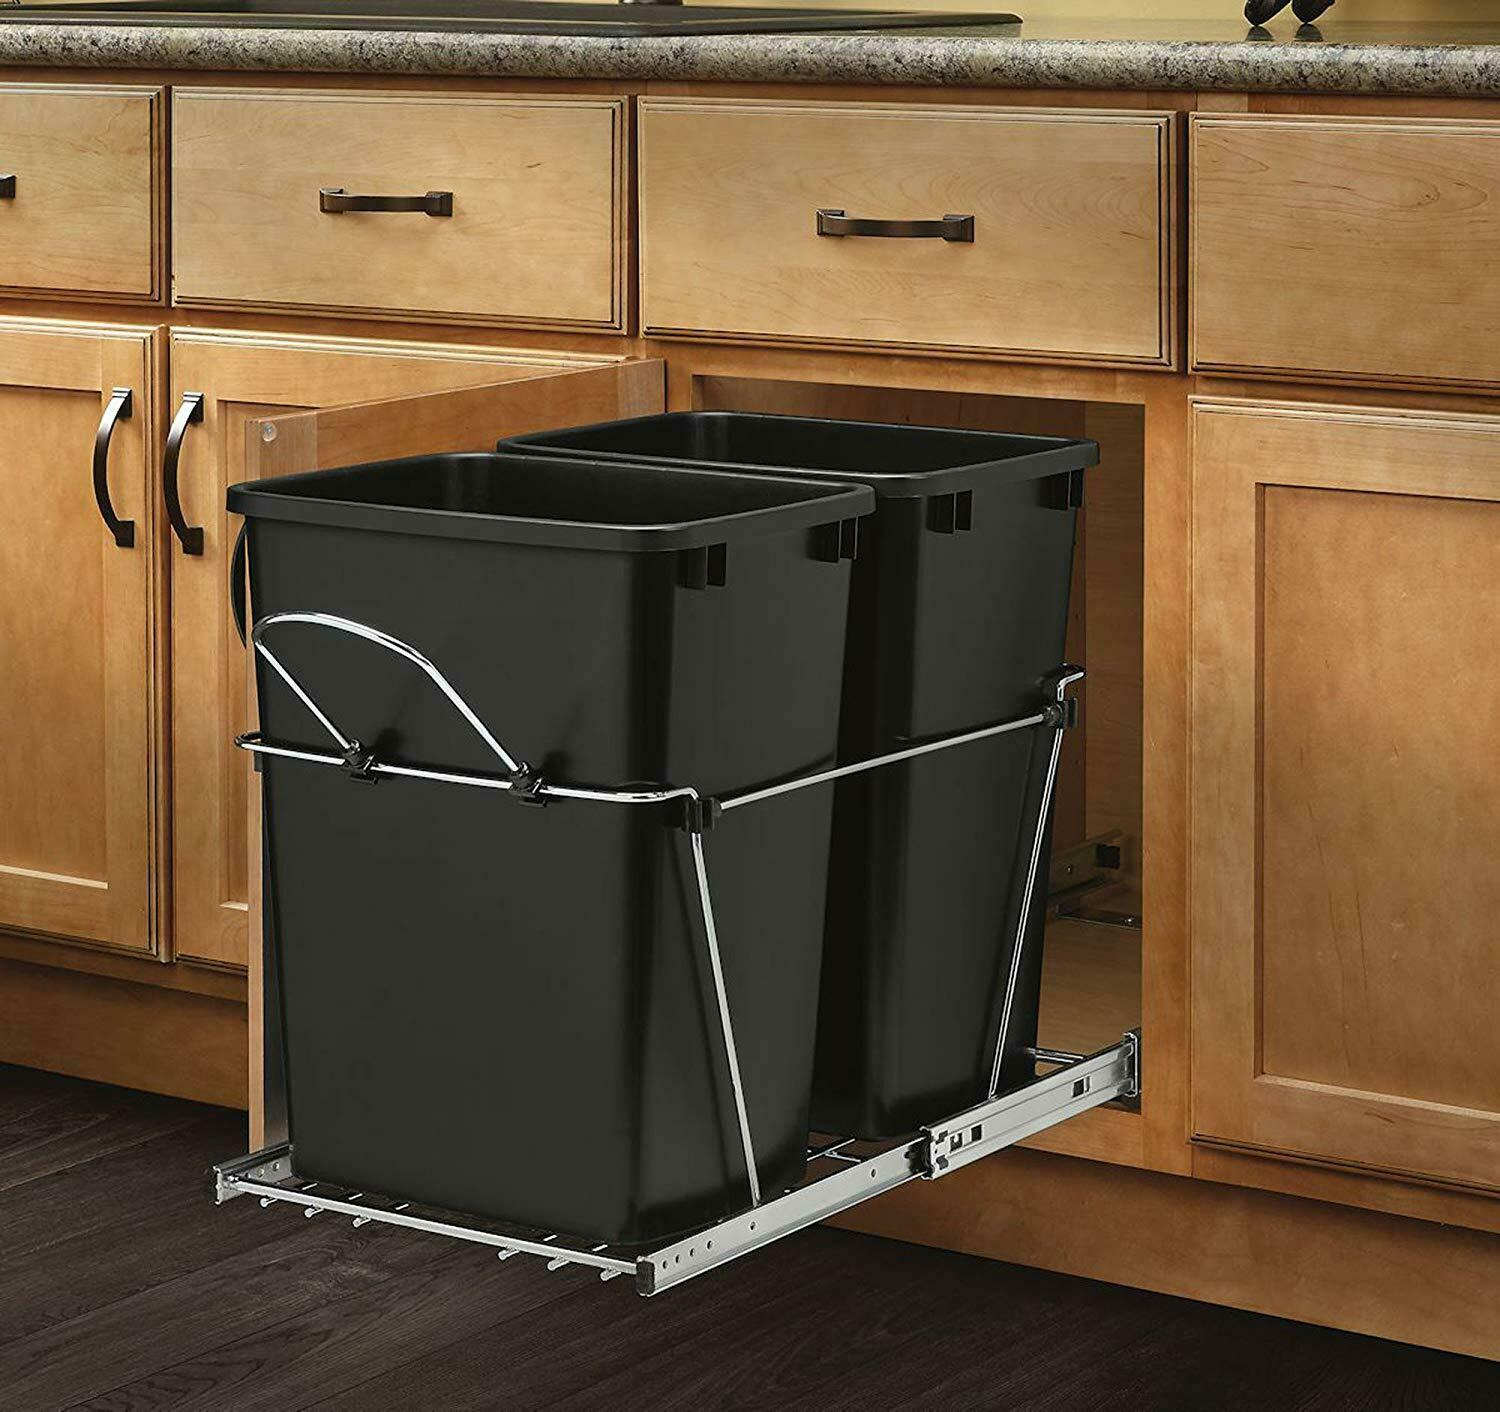 Pull Out Trash Garbage Can Waste Waste Waste Container Kitchen Cabinet Organizer 35 Quart 87afc6